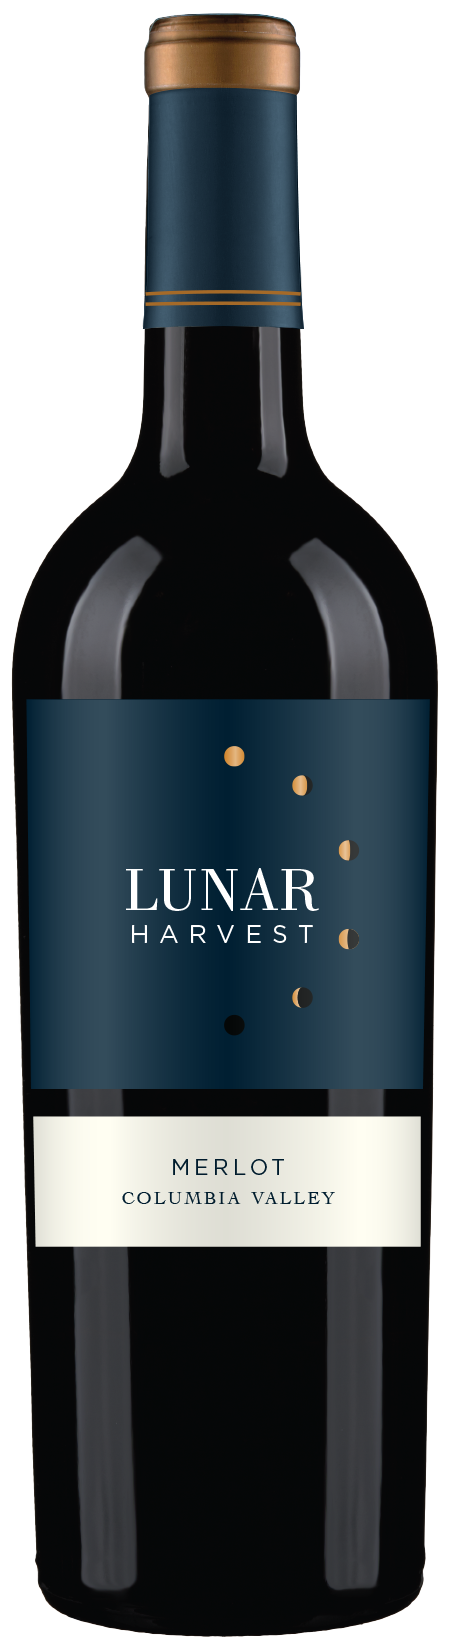 Lunar Harvest Merlot - Columbia Valley AVATASTING NOTEMouthwatering flavors of blackberry and mocha finish with silky tannins and lingering oak.FOOD PAIRINGRoasted pork loin, red sauce pasta dishes, & hard cheesesWINE SPECSABV 14%TA 4.86pH 3.87